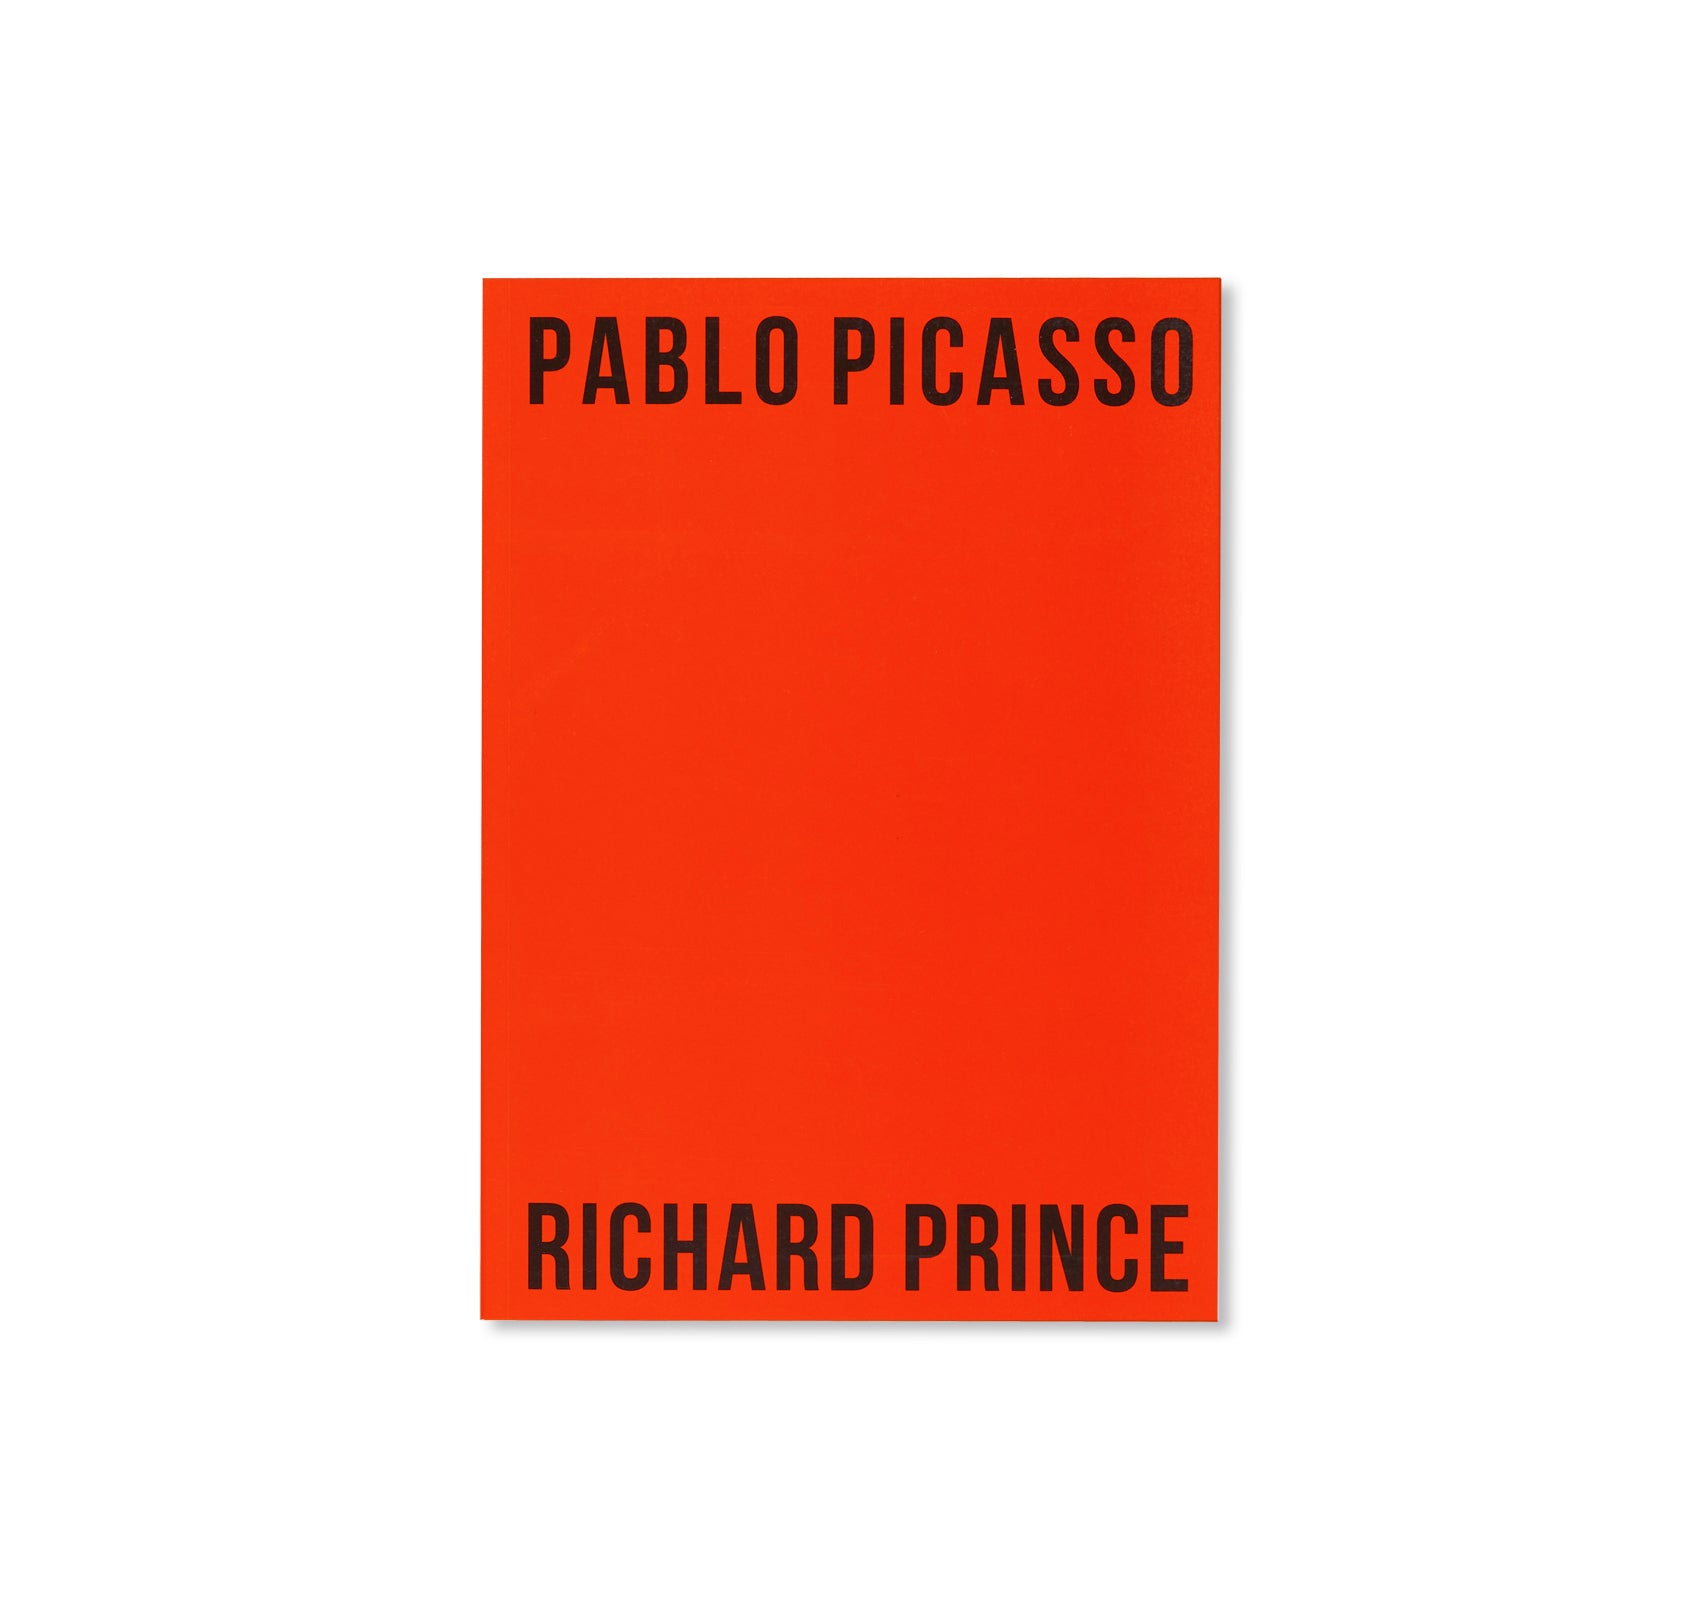 PABLO PICASSO RICHARD PRINCE by Richard Prince